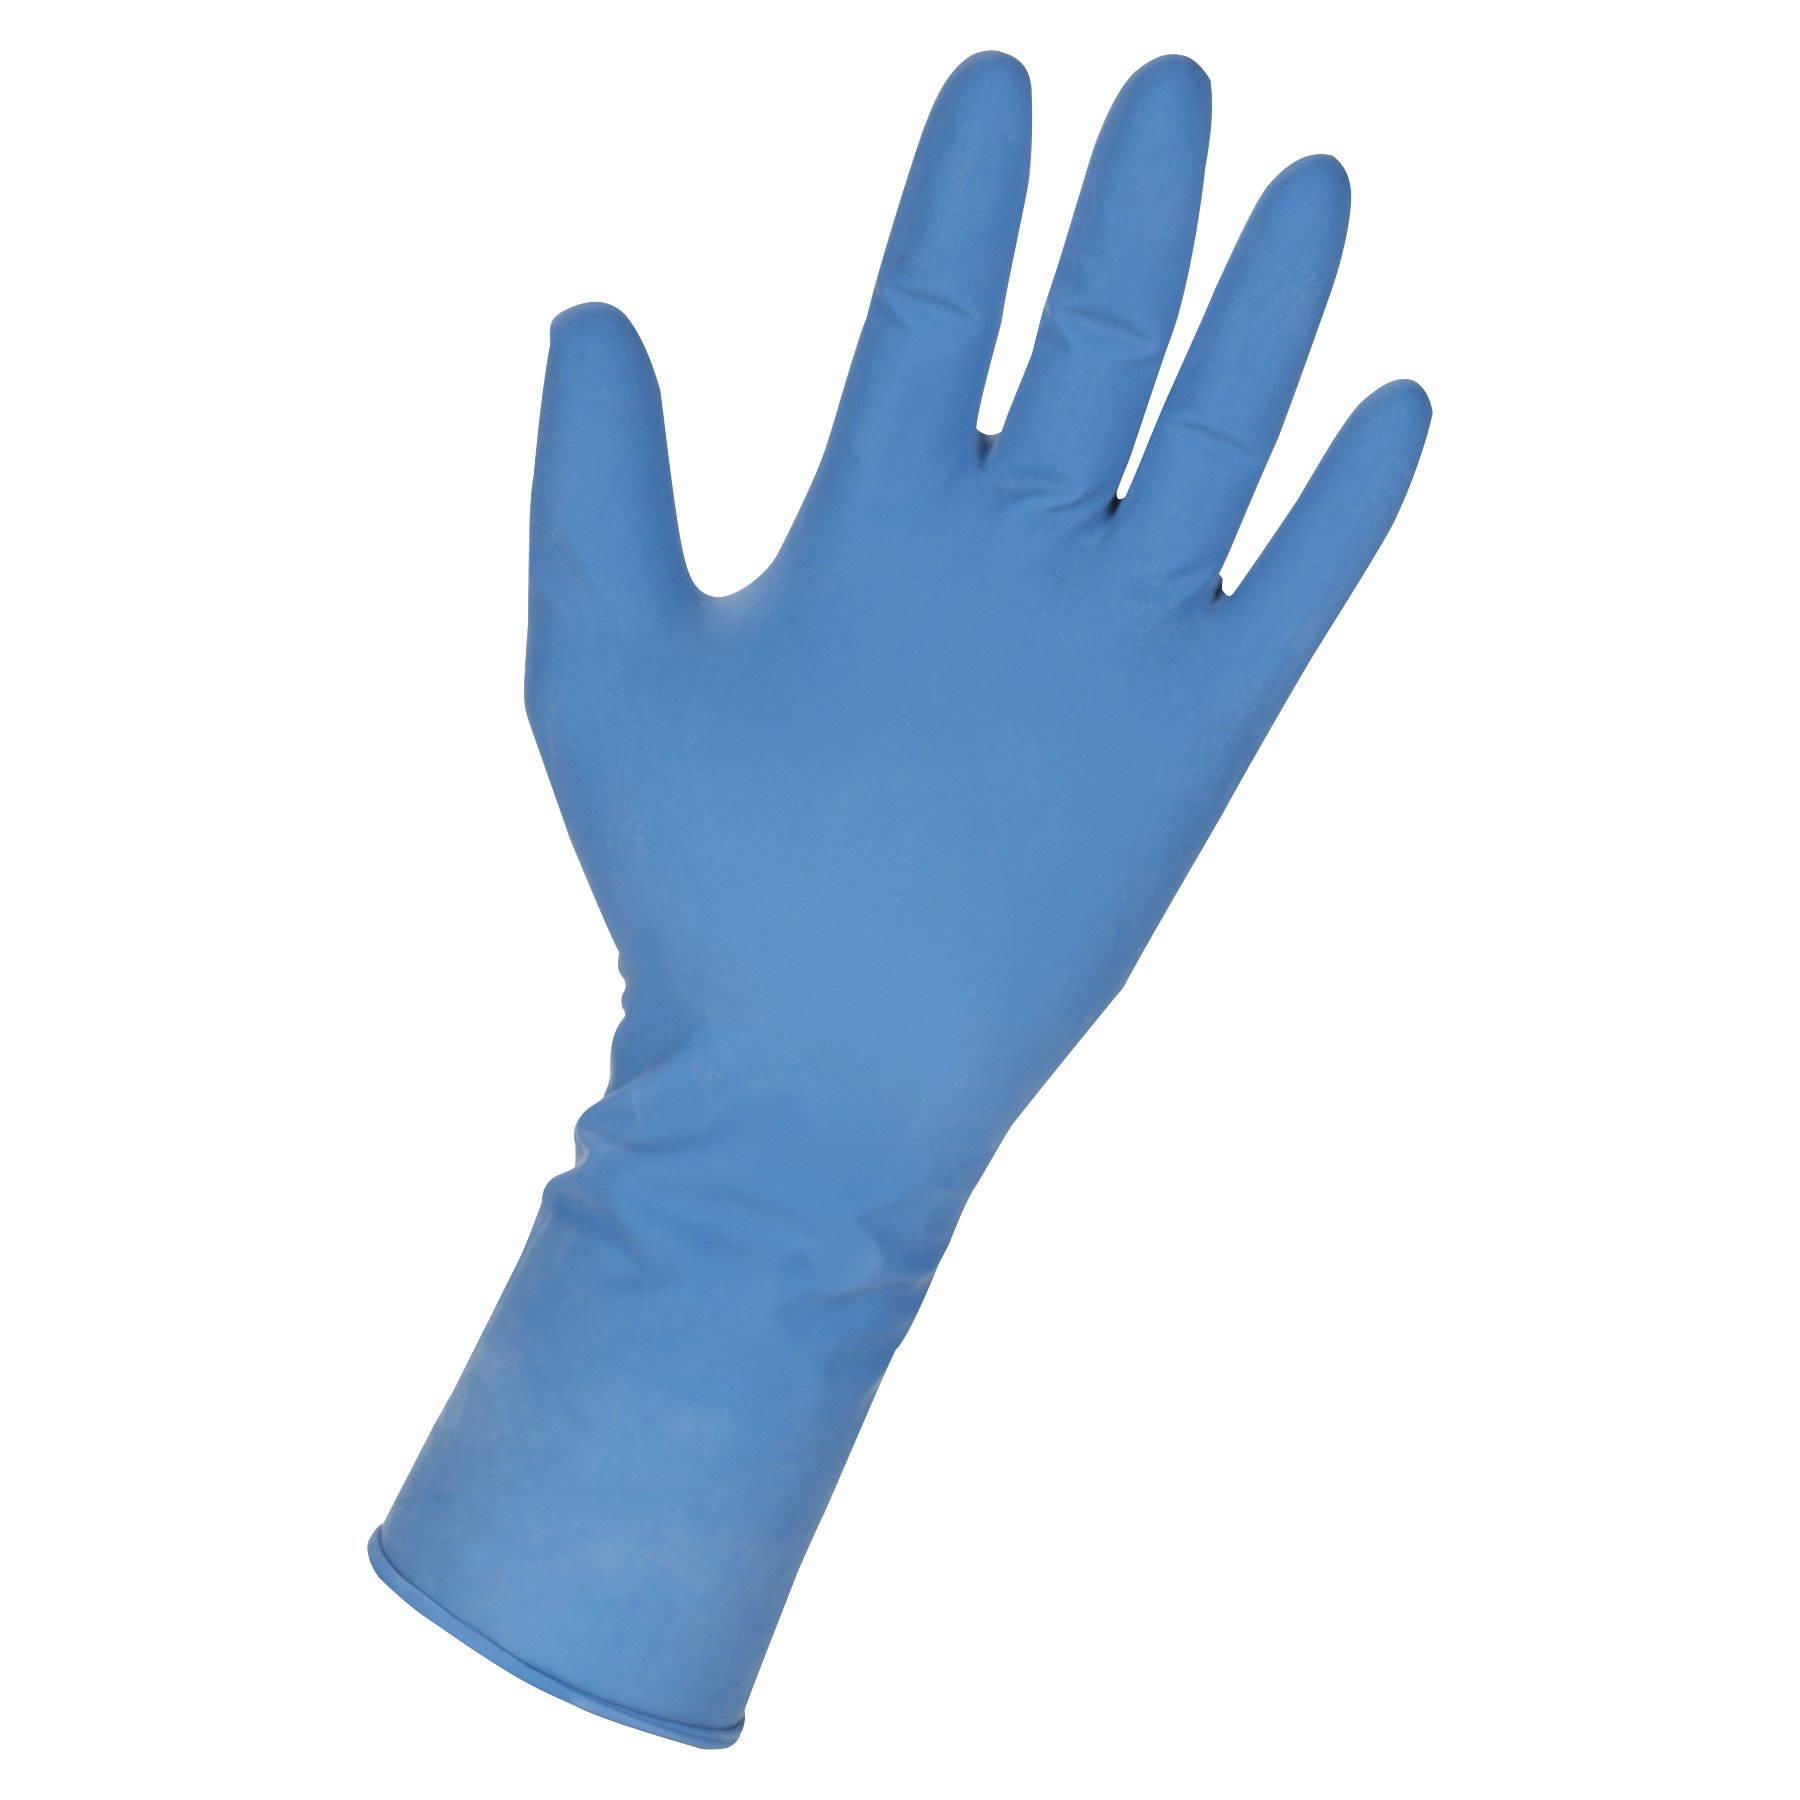 Genuine Joe GJO15385 14 Mil Max Protection Industrial Latex Gloves, XX-Large, Dark Blue (Pack of 50)